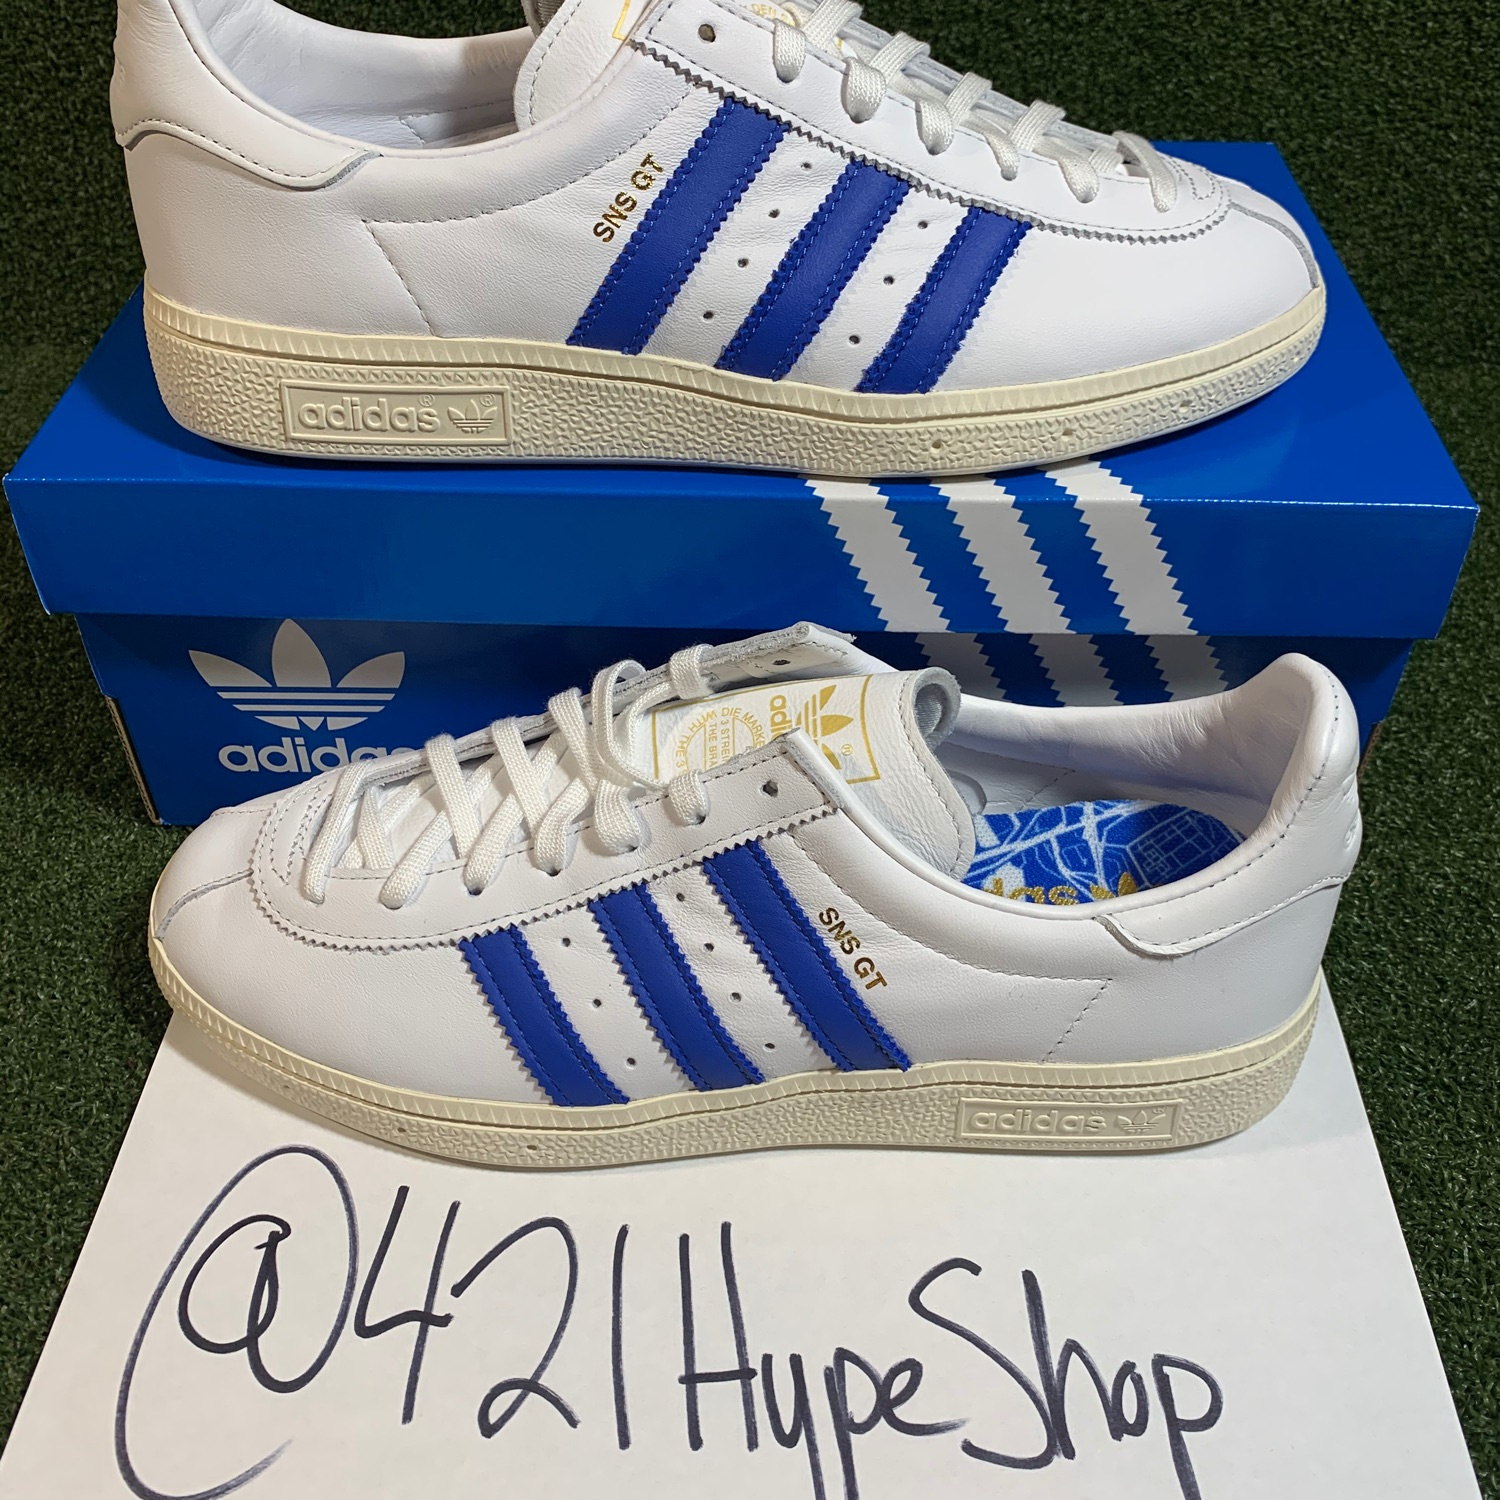 Exclusive Adidas Sns Gt Stockholm Shoes